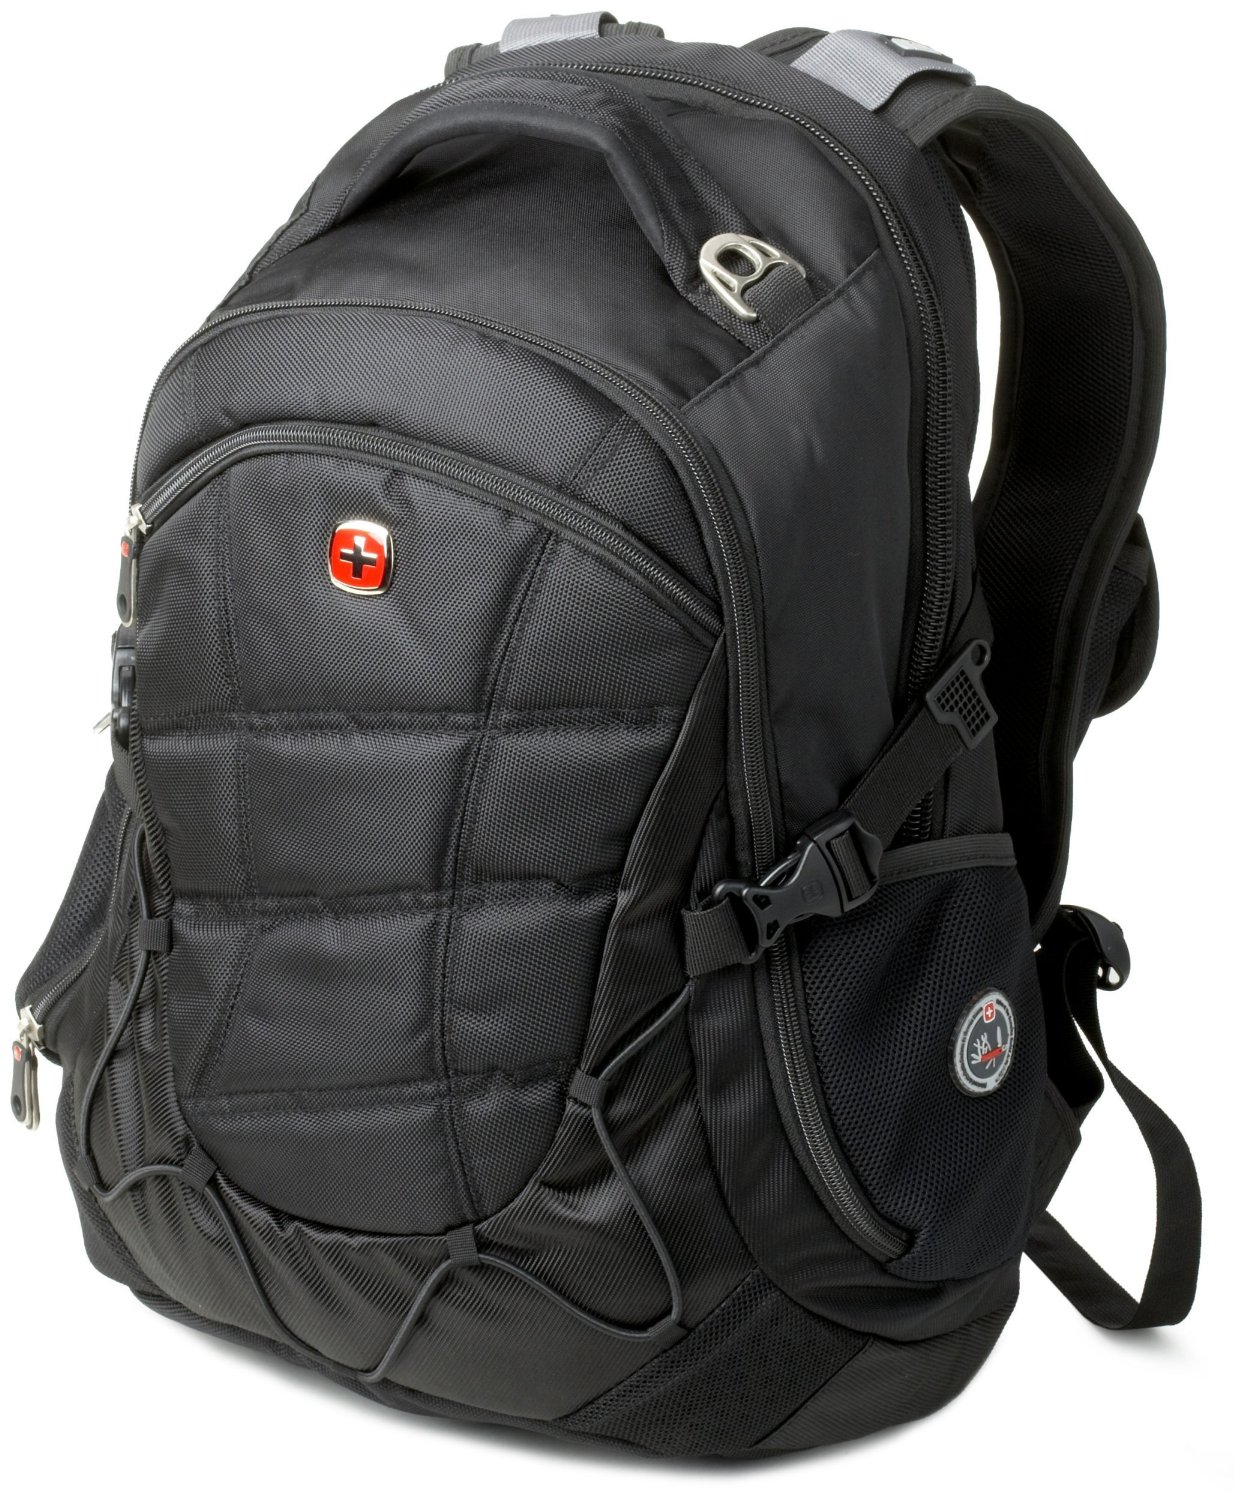 Backpacks Swiss Gear ajae02av